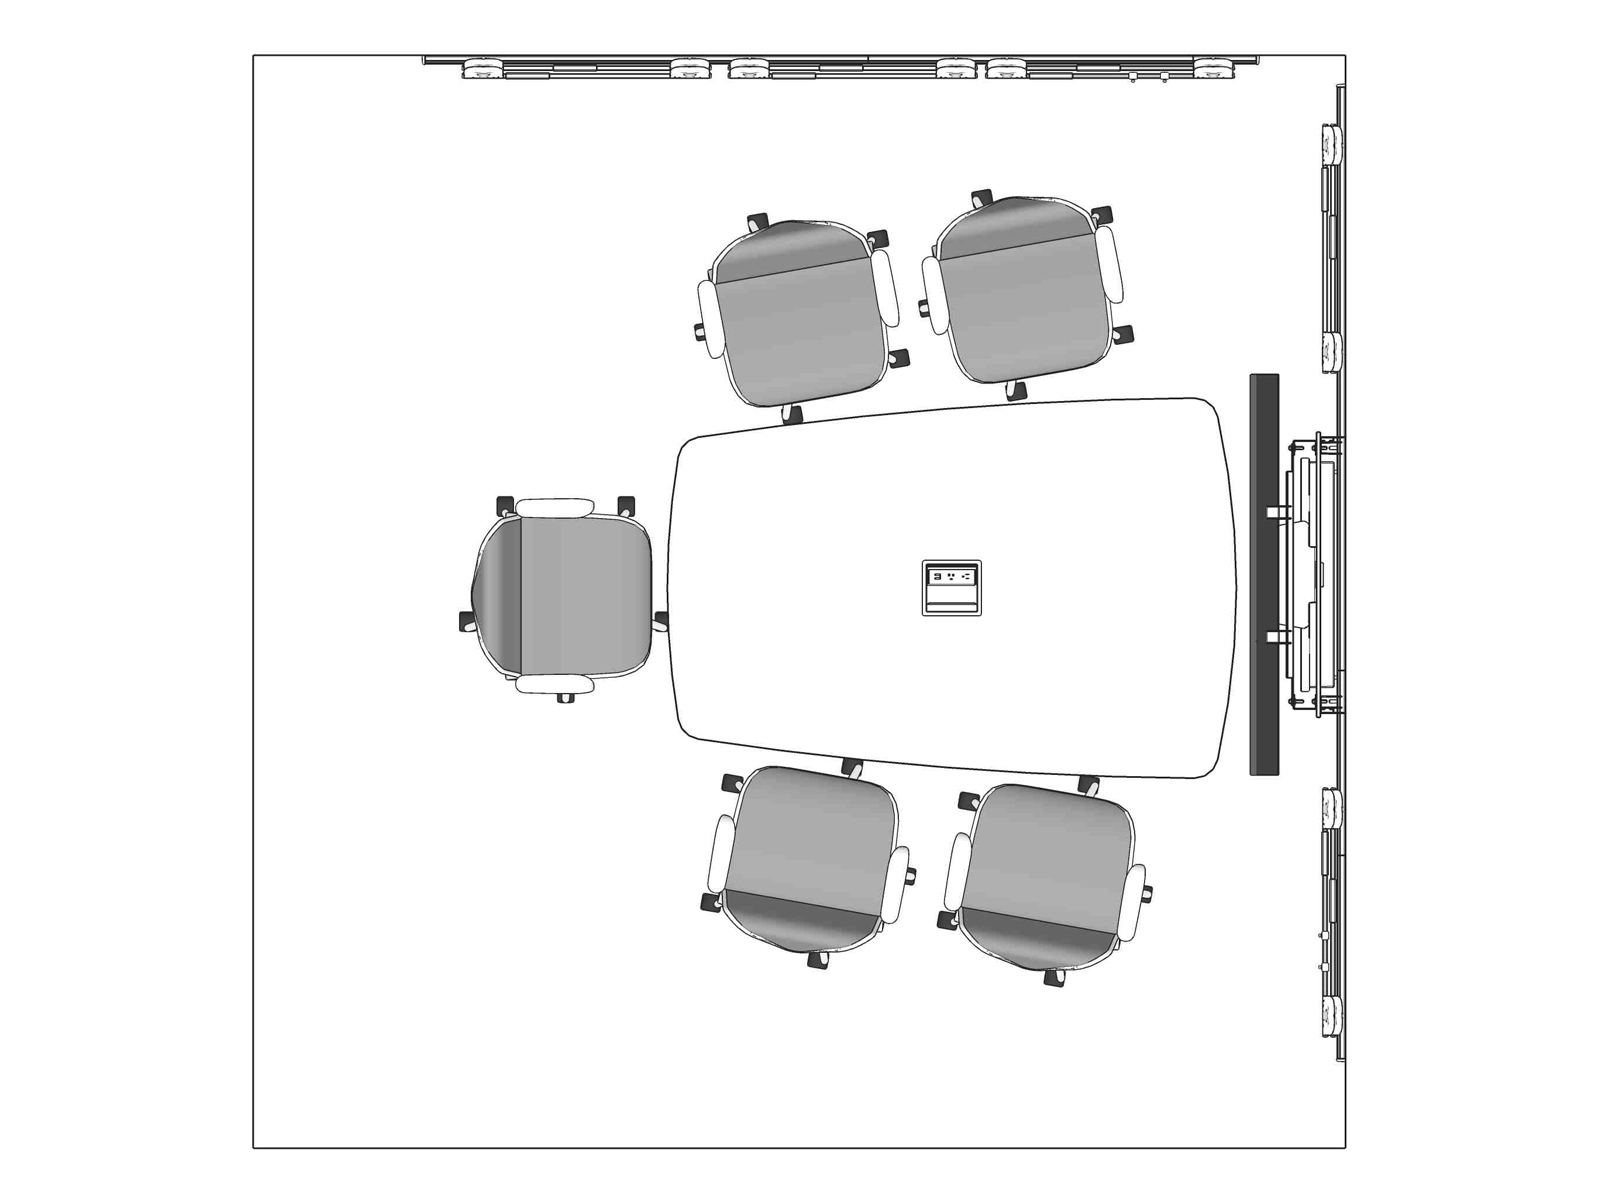 A line drawing viewed from above - Meeting Space 022